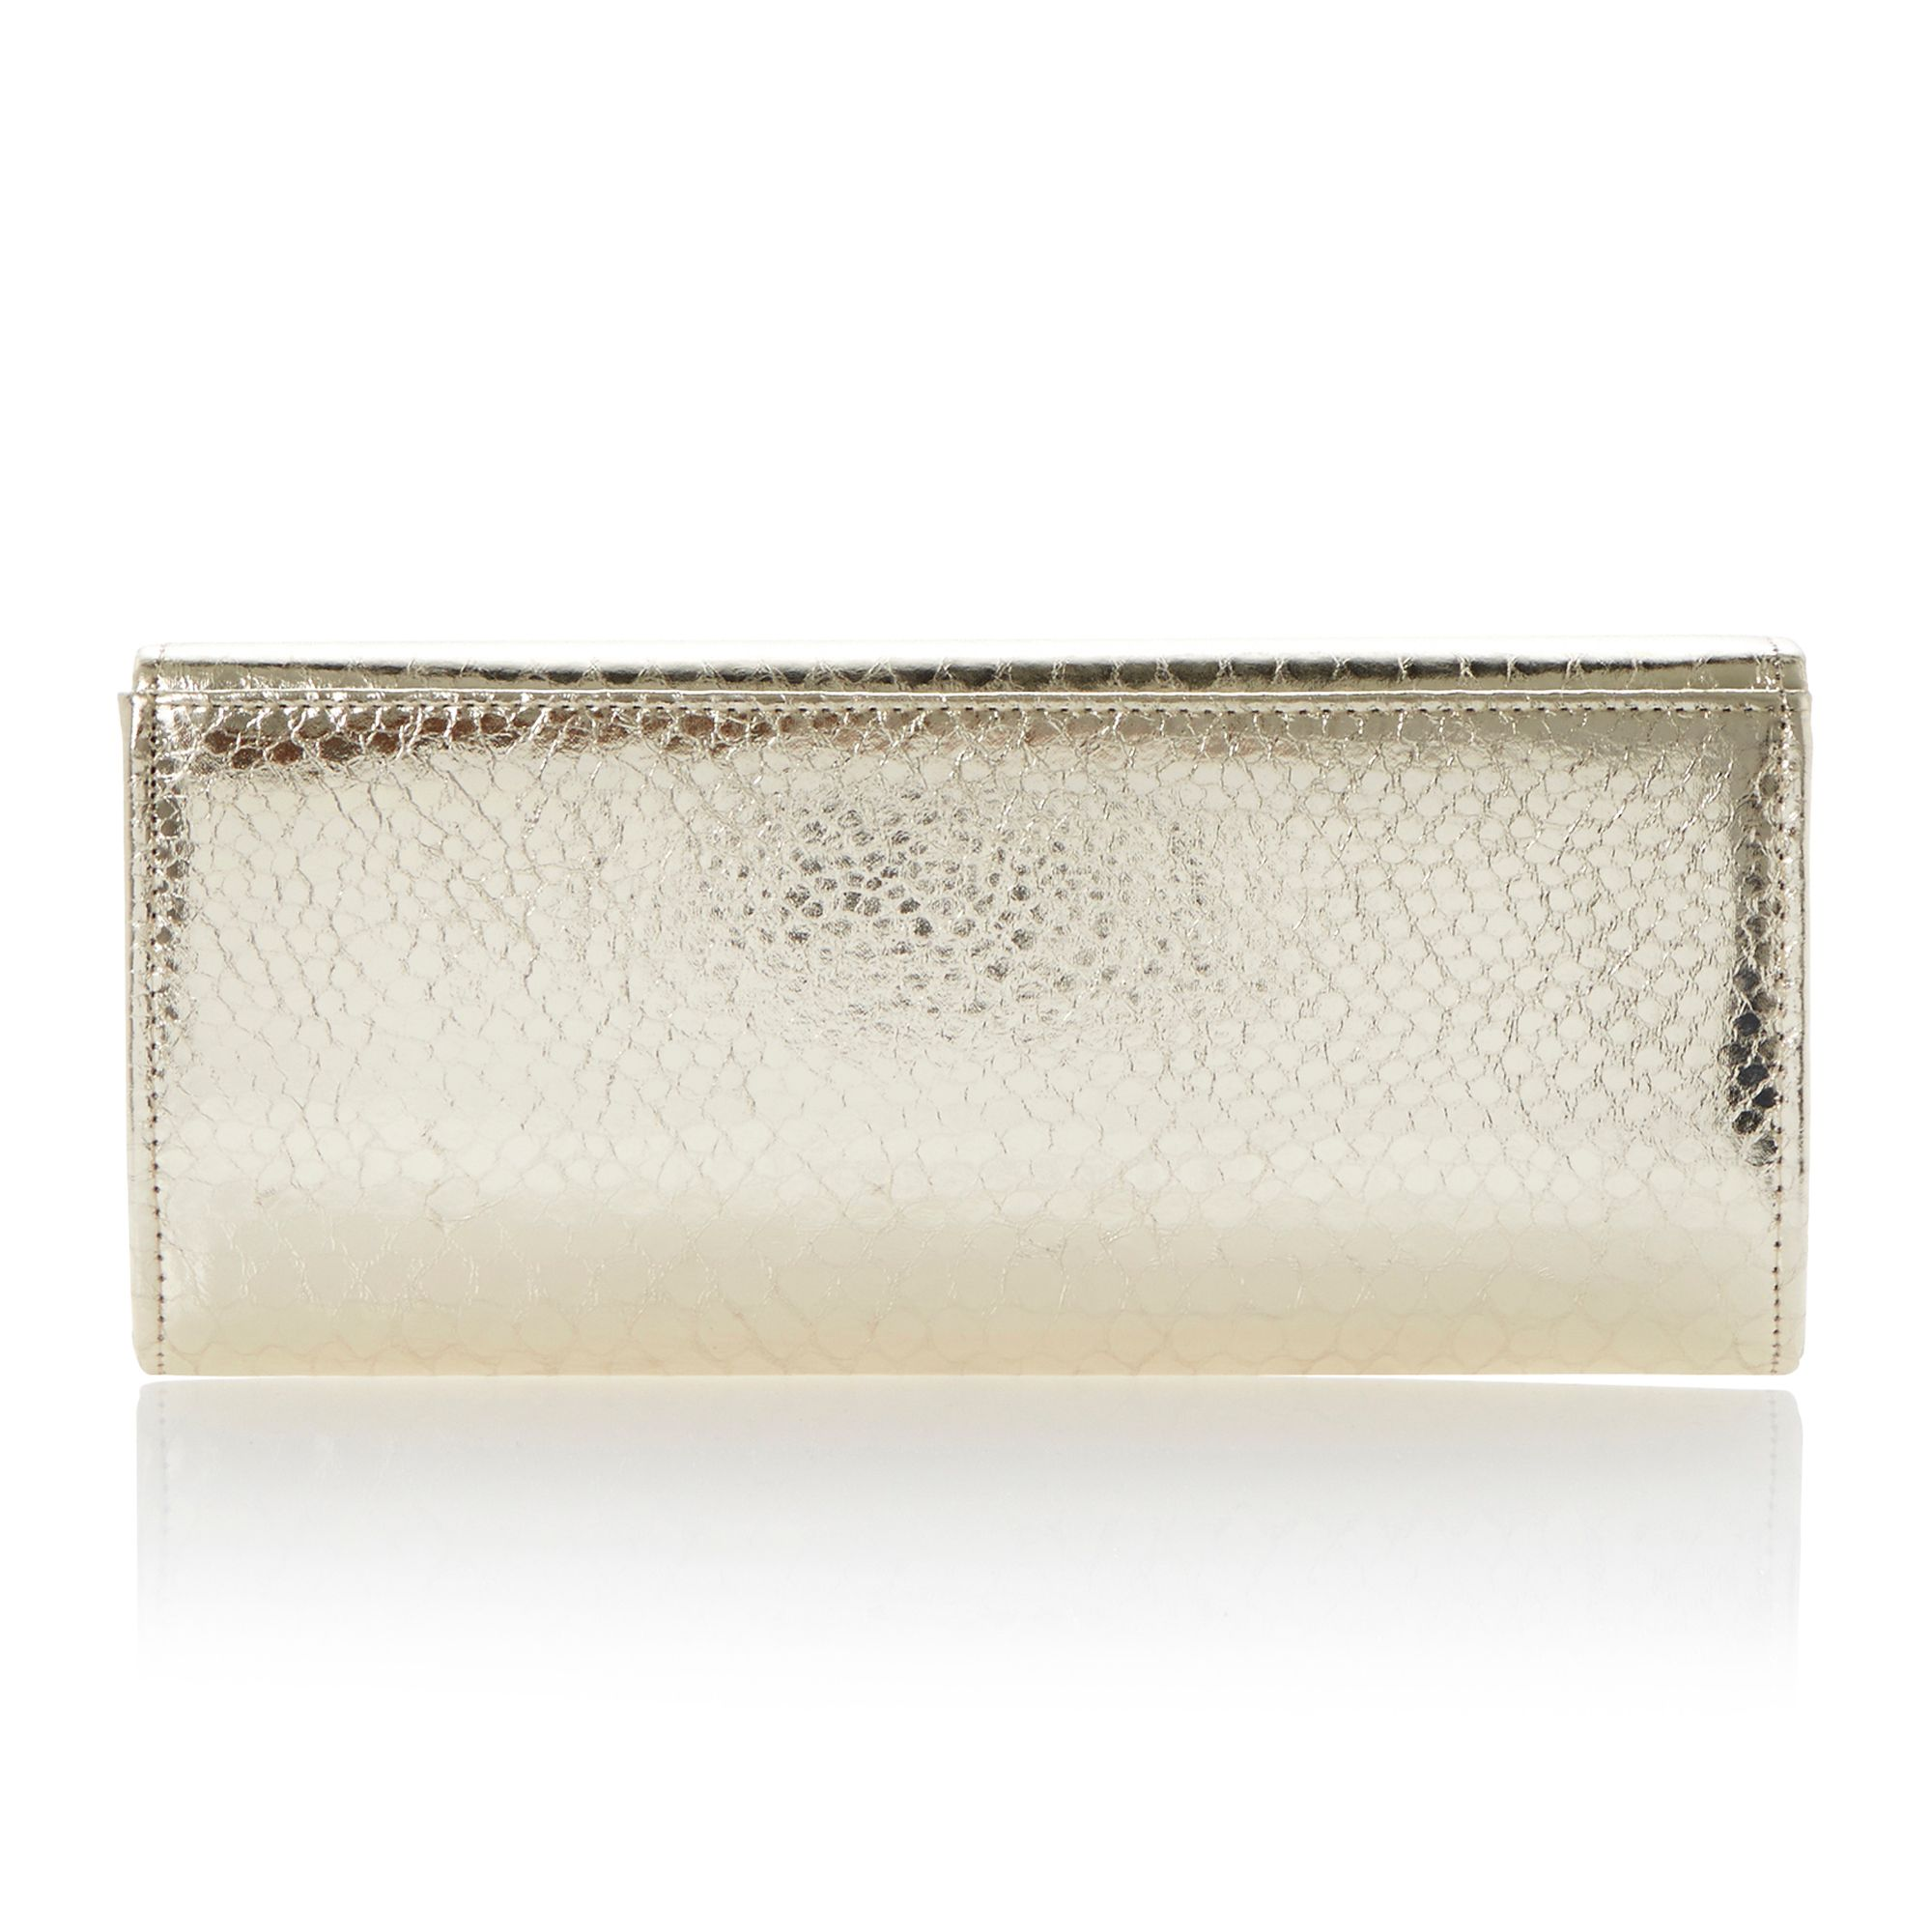 Bestro asymmetric clutch bag